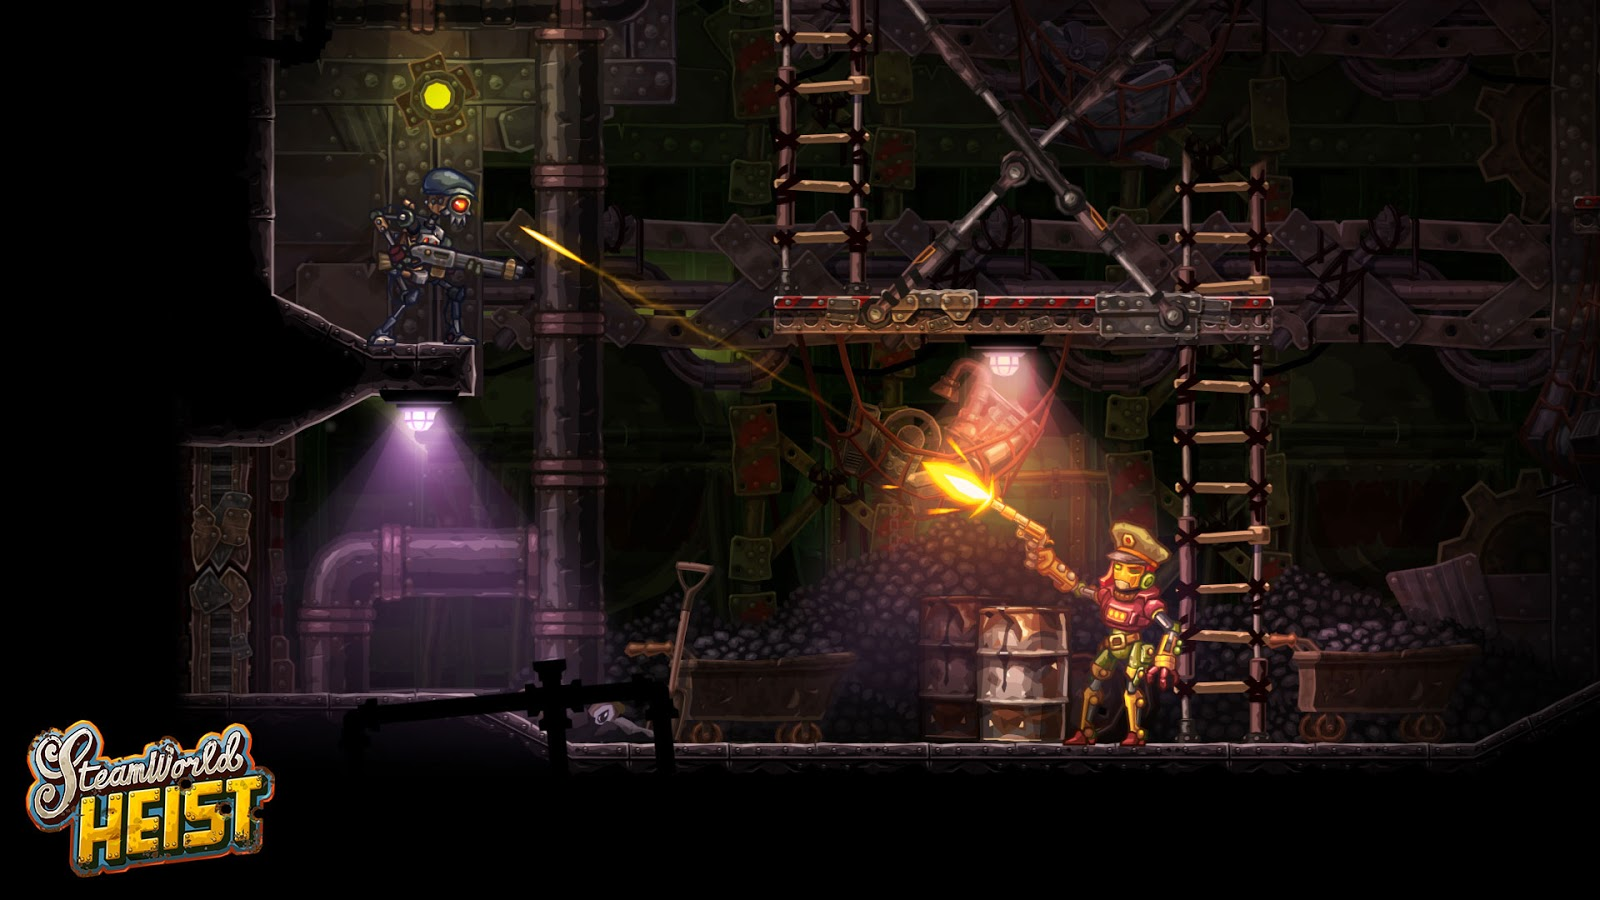 Now is the perfect time to grab SteamWorld Heist while it's on sale